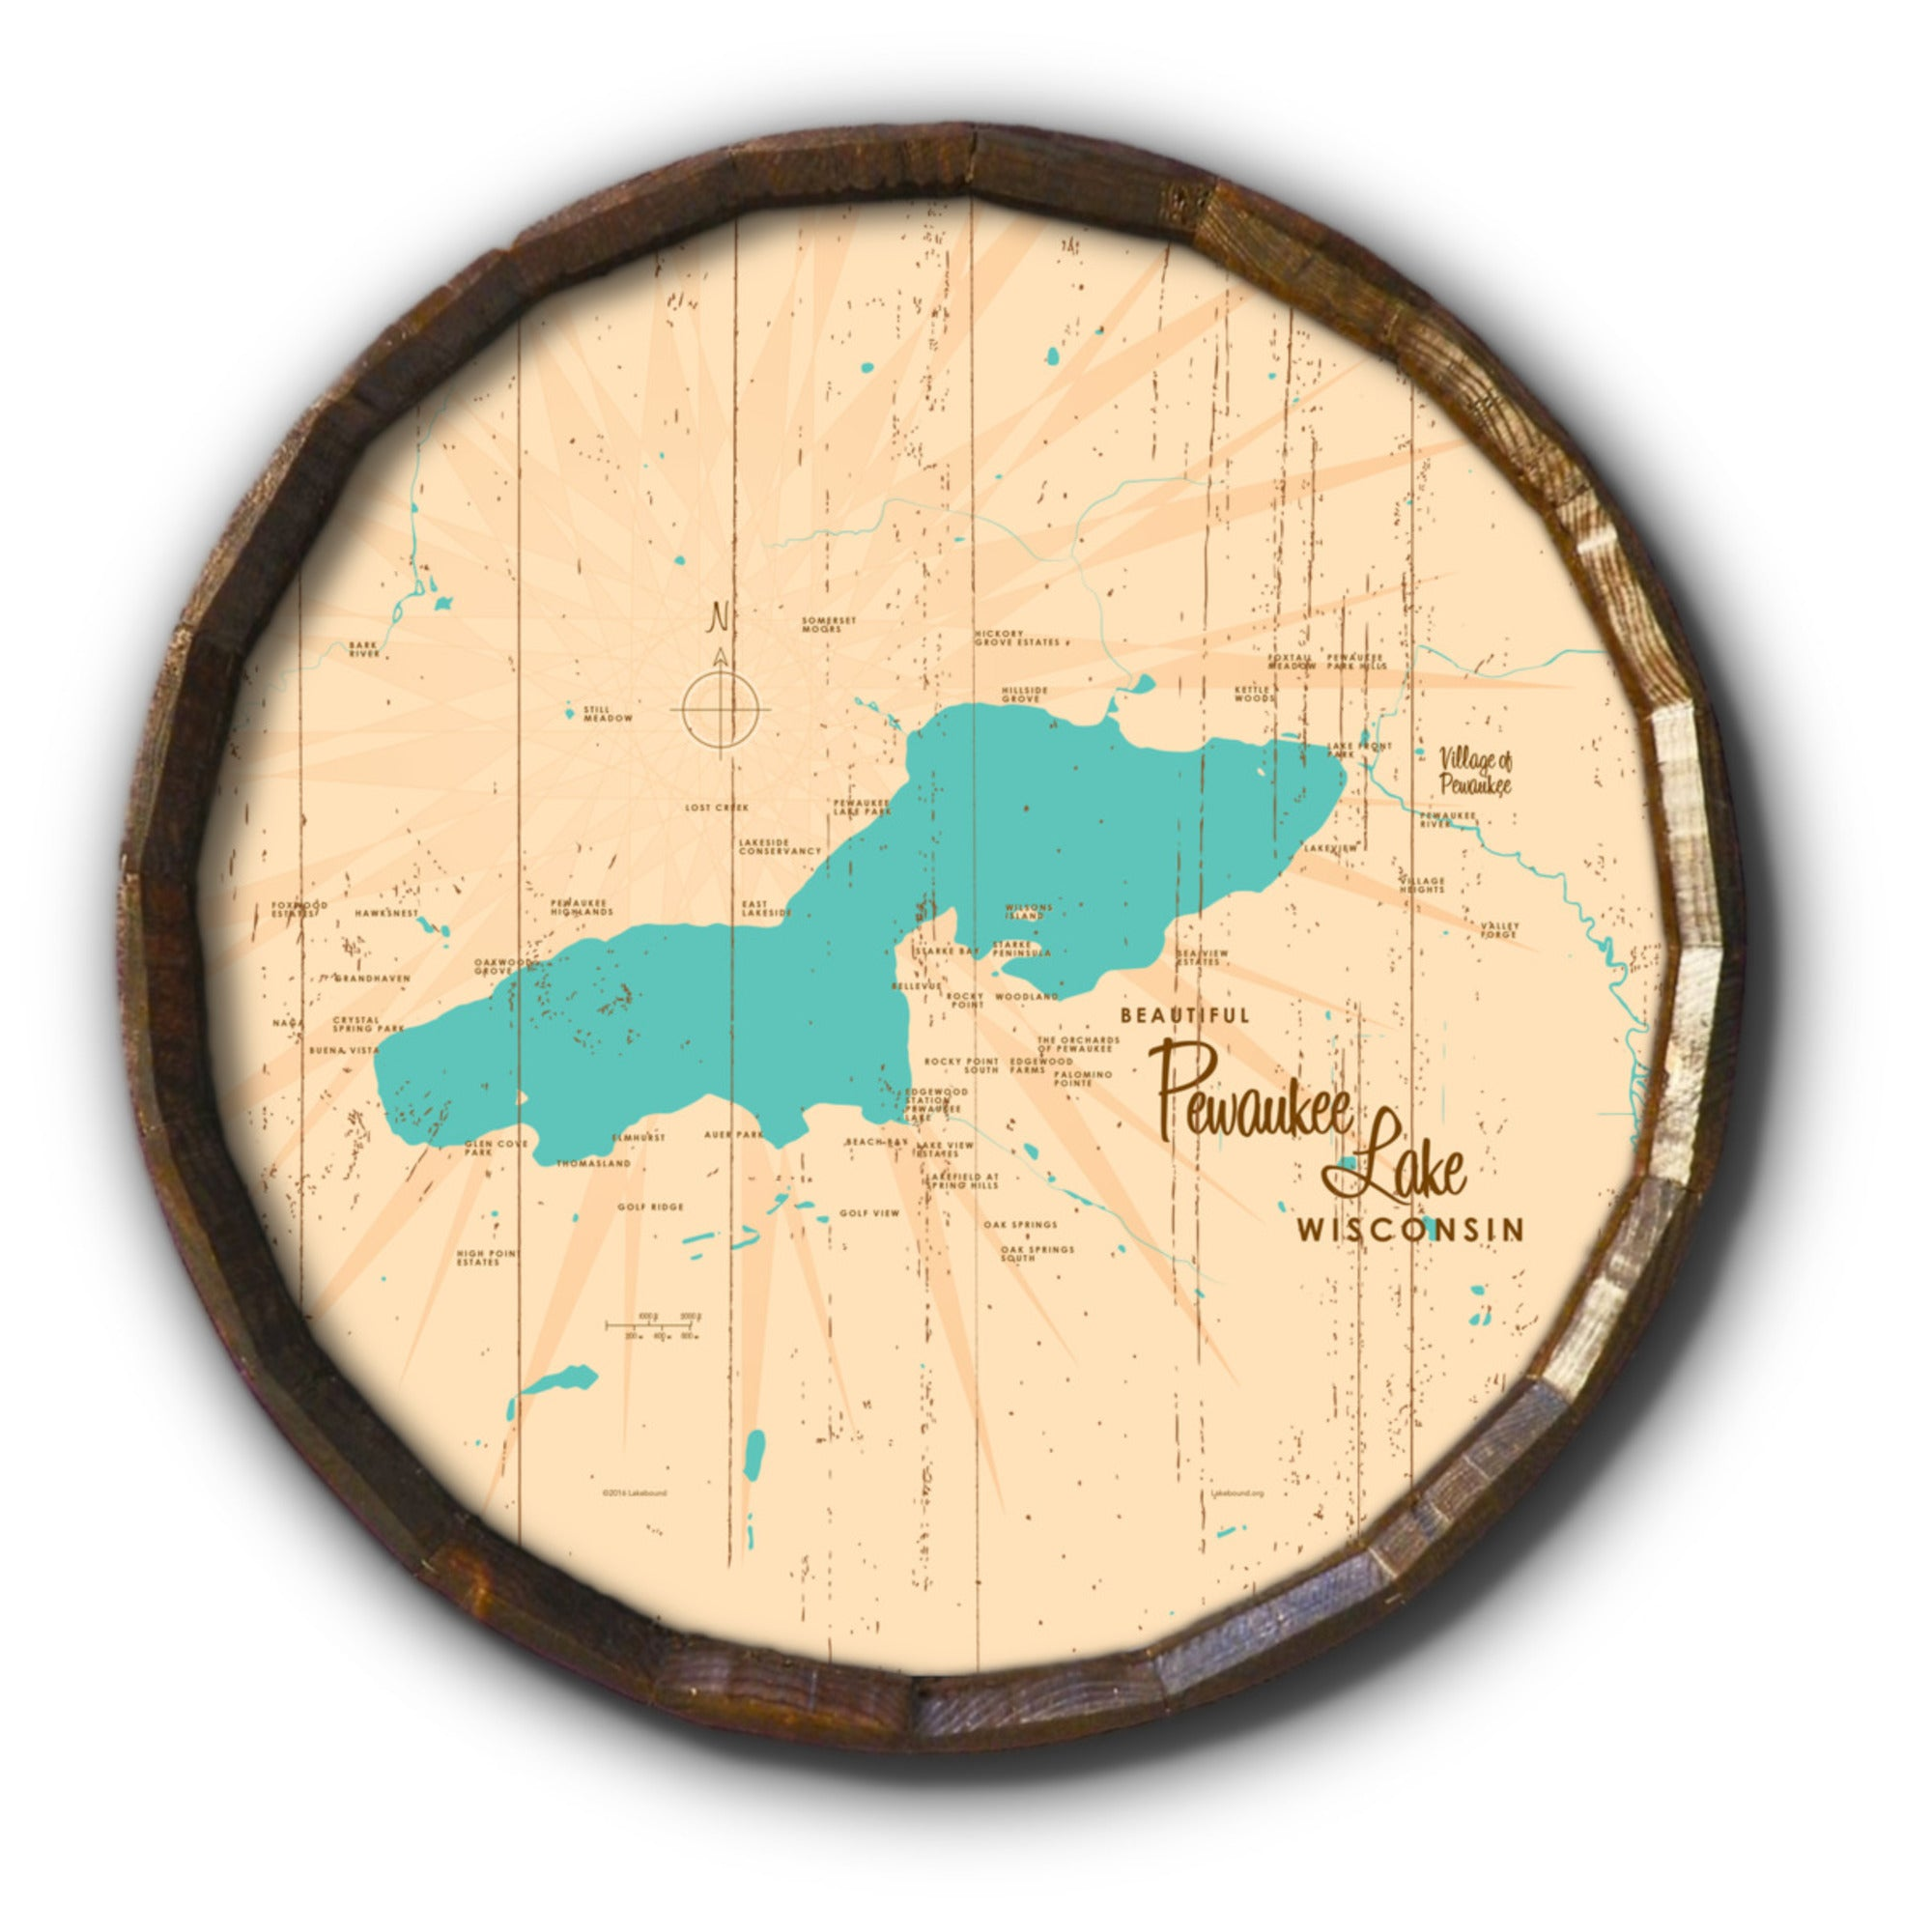 Pewaukee Lake Wisconsin, Rustic Barrel End Map Art